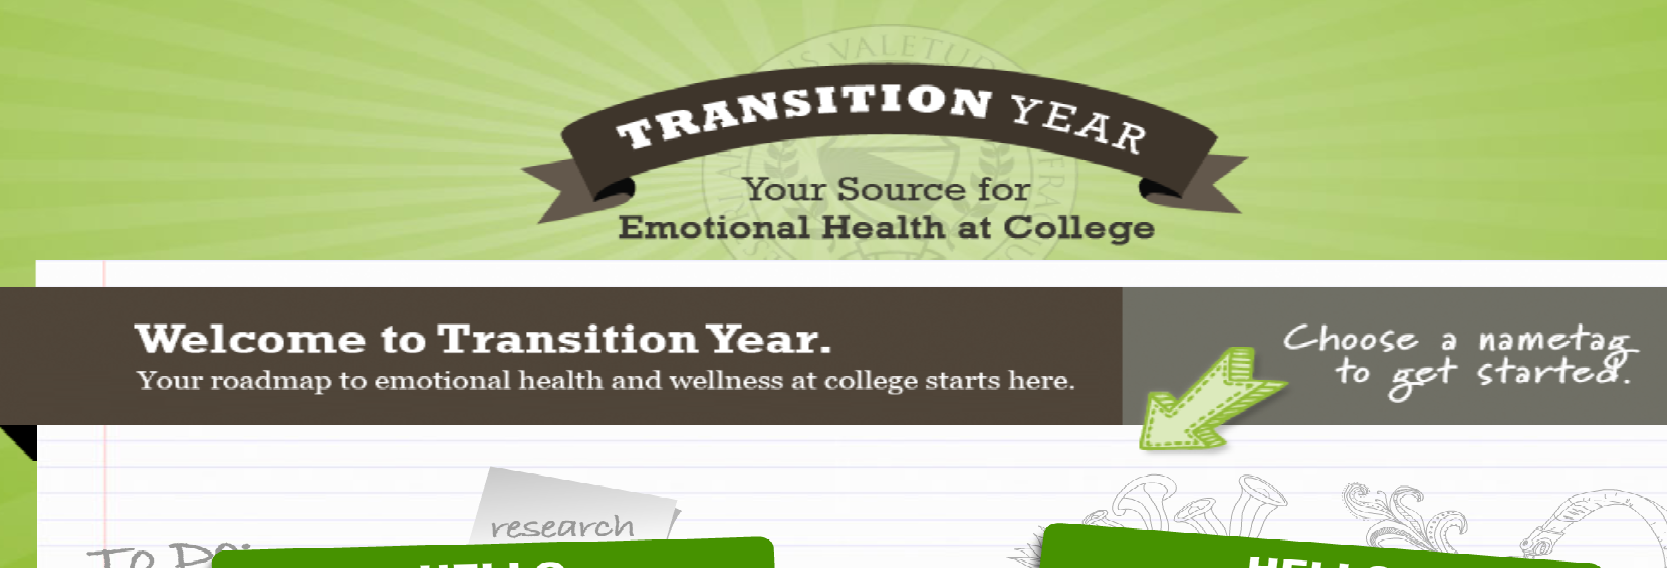 http://www.transitionyear.org/